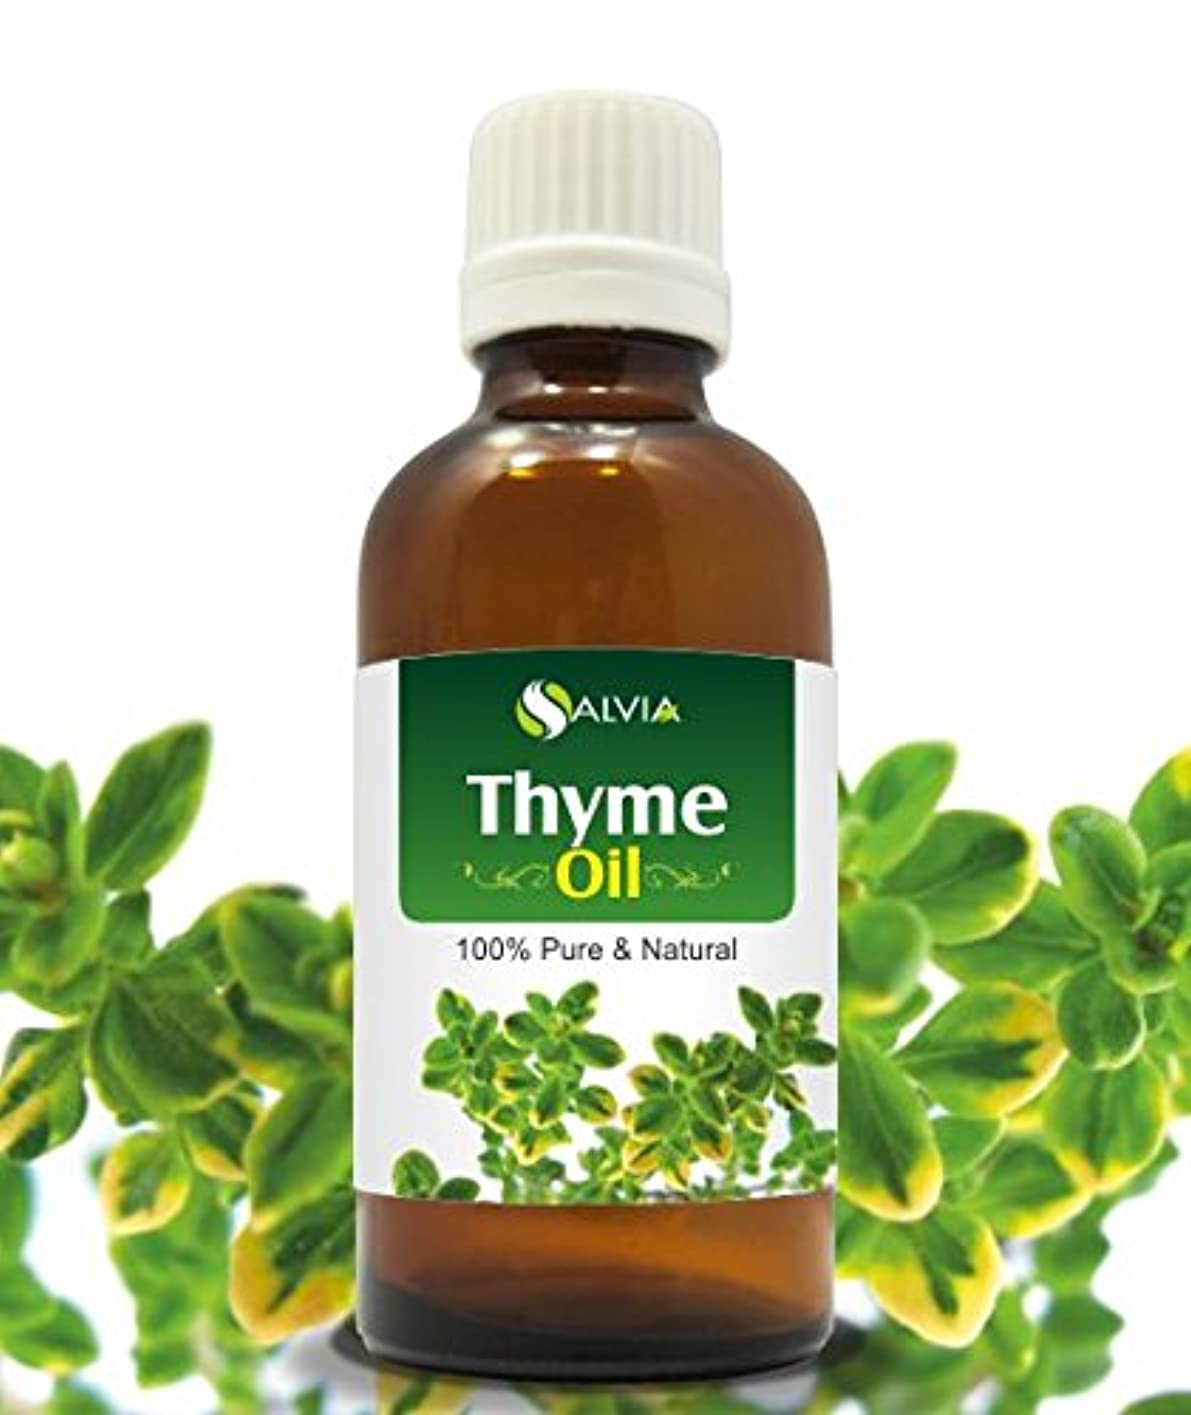 イブニング約束する落ち着いたTHYME OIL 100% NATURAL PURE UNDILUTED UNCUT ESSENTIAL OIL 100ML